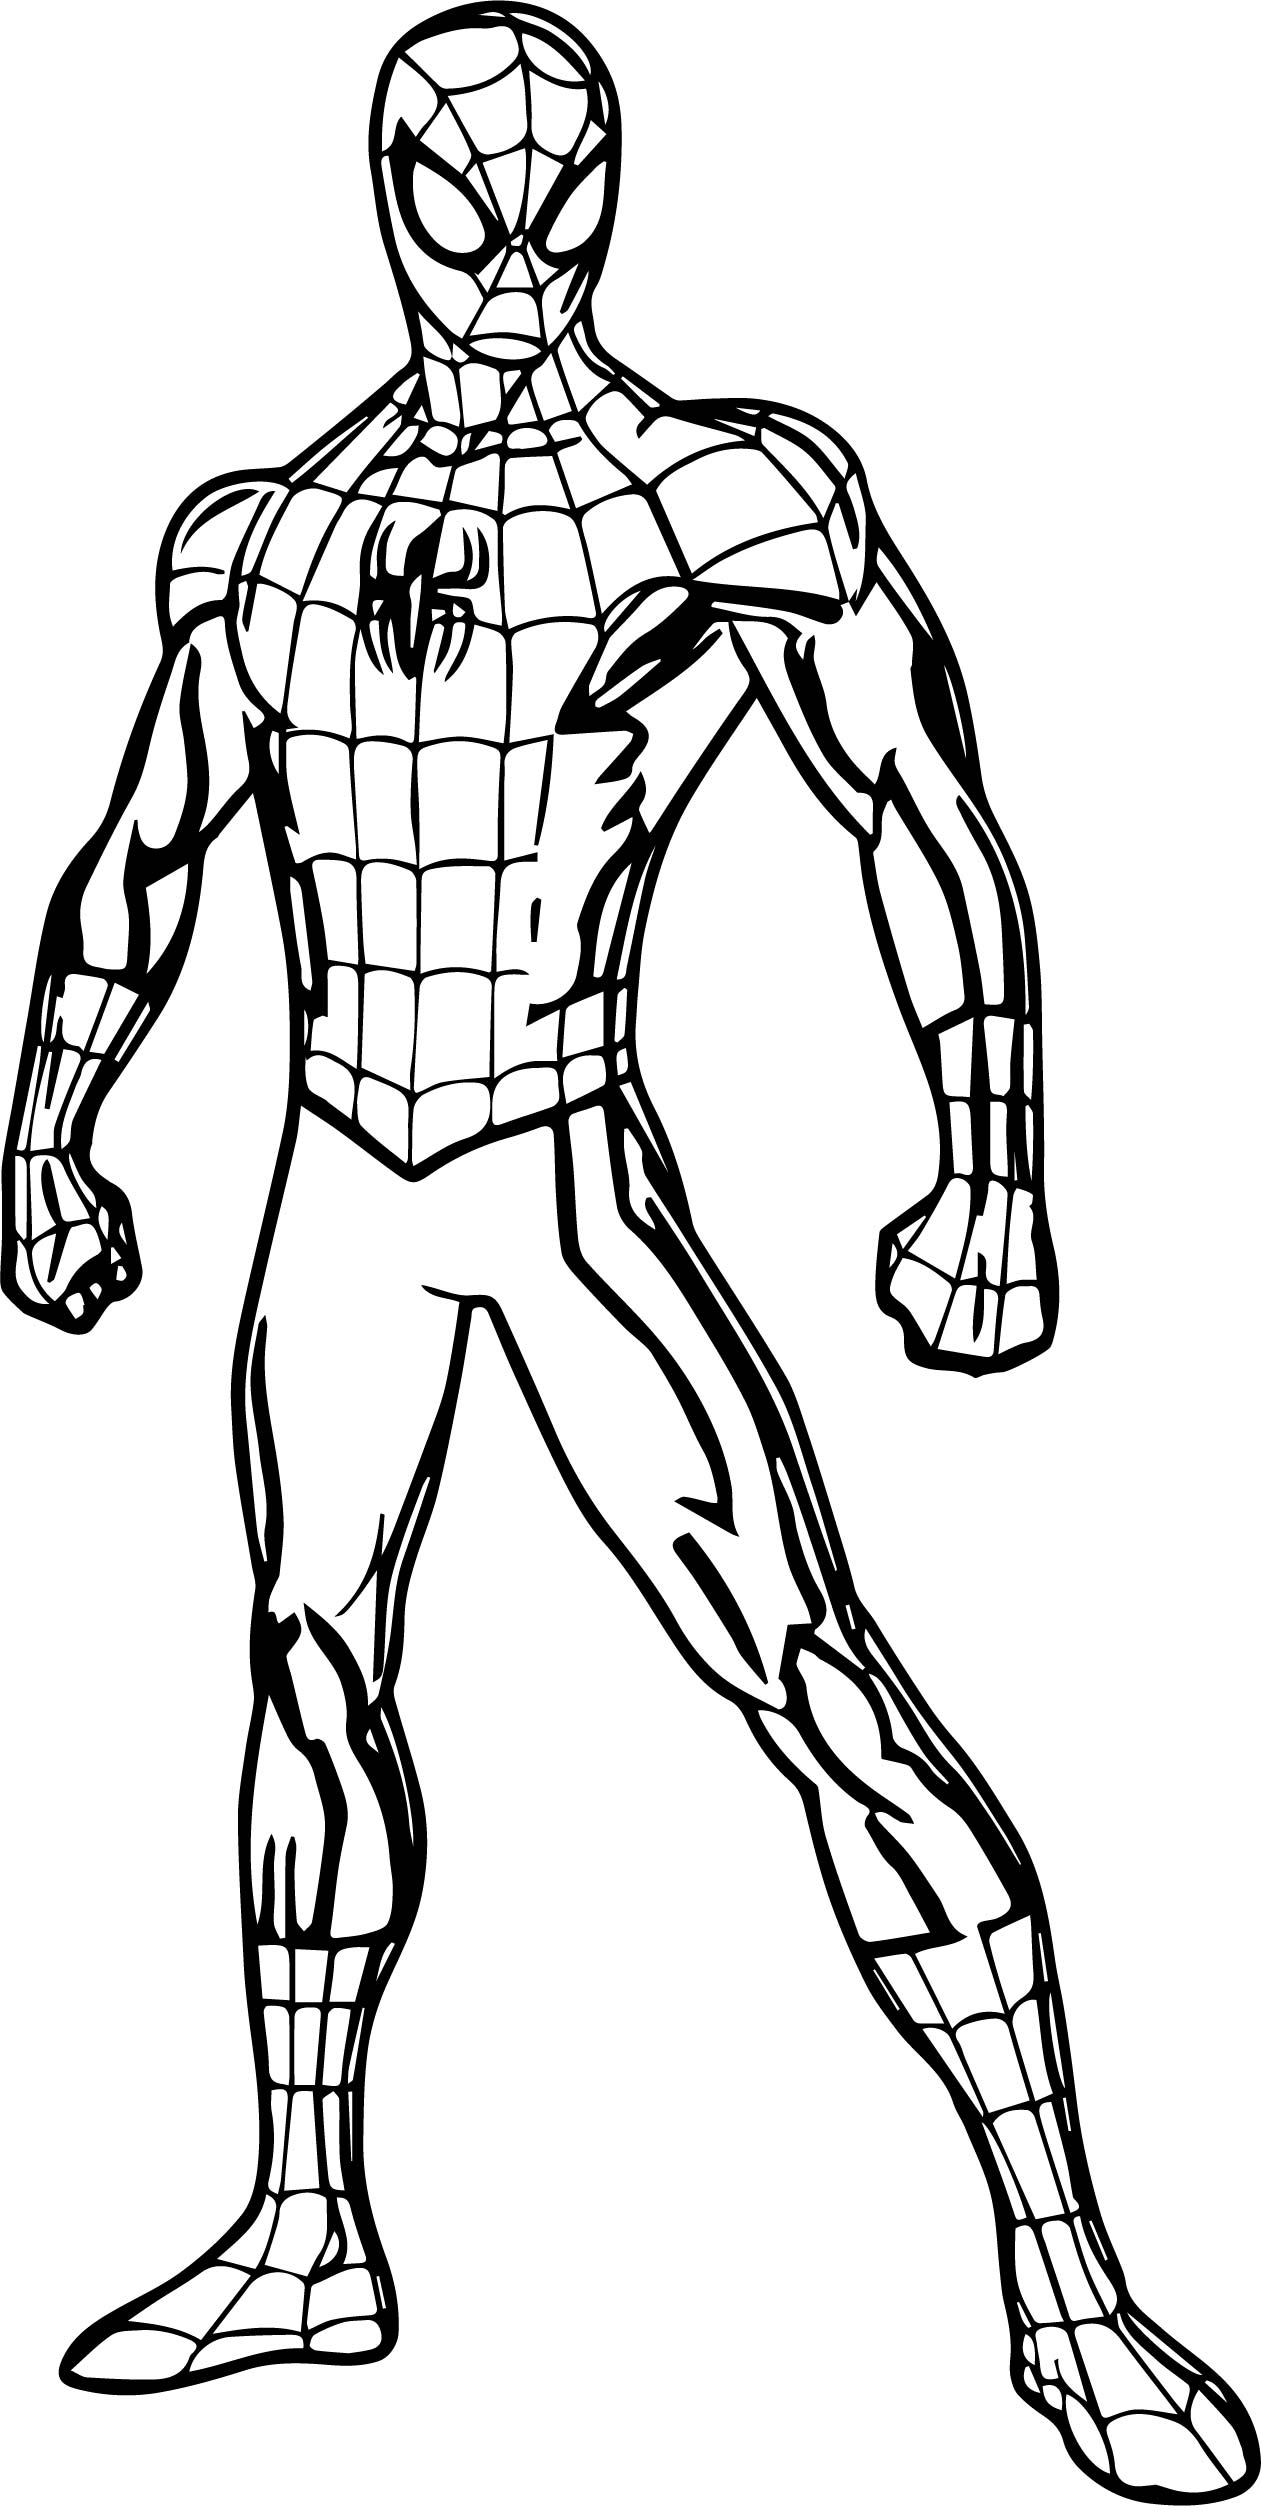 Spider Man Pose Coloring Page